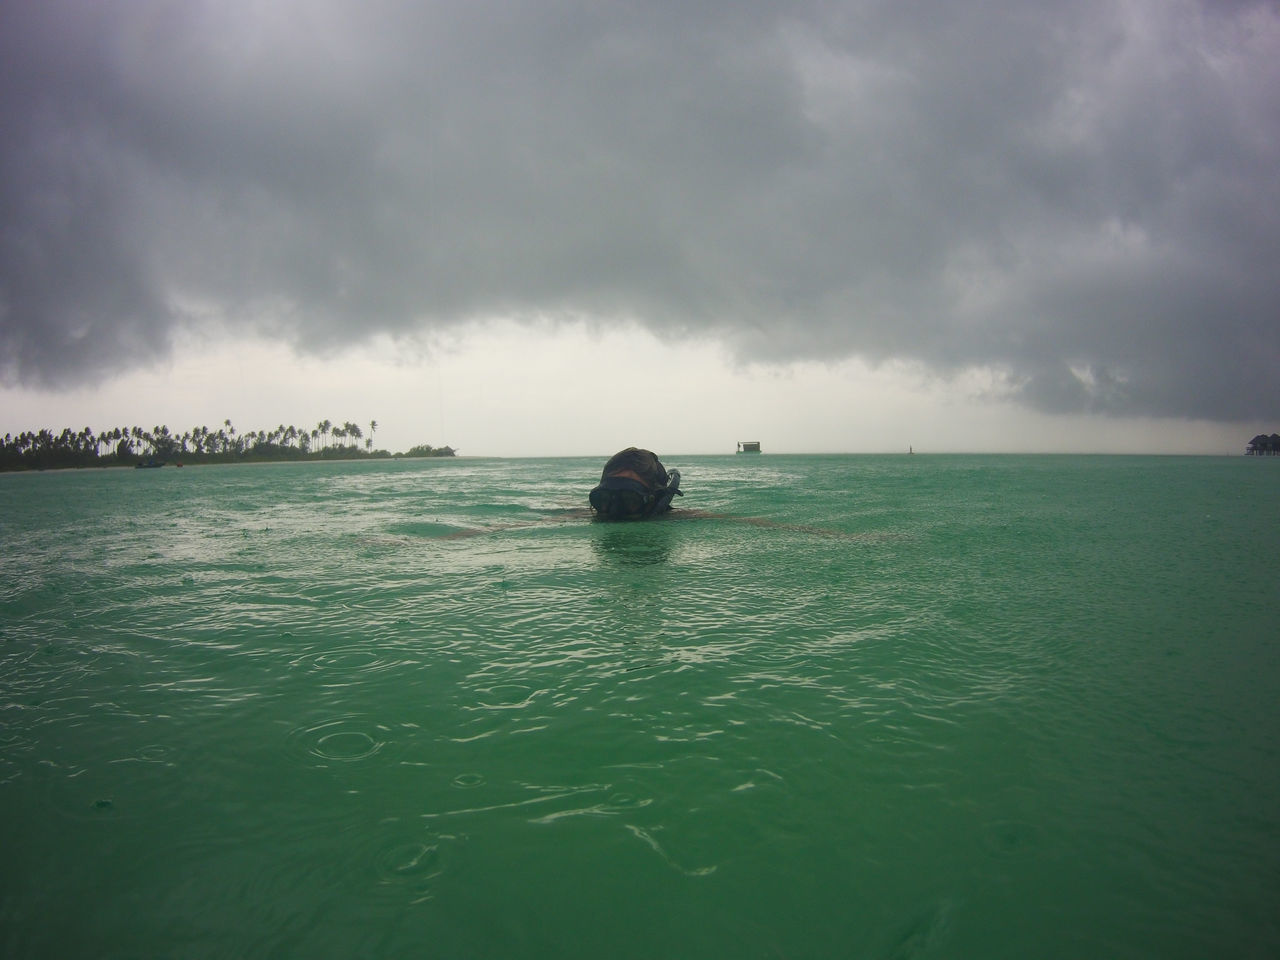 Clouds Colourful Different Perspective R Snorkeling Stom Stormy Weather